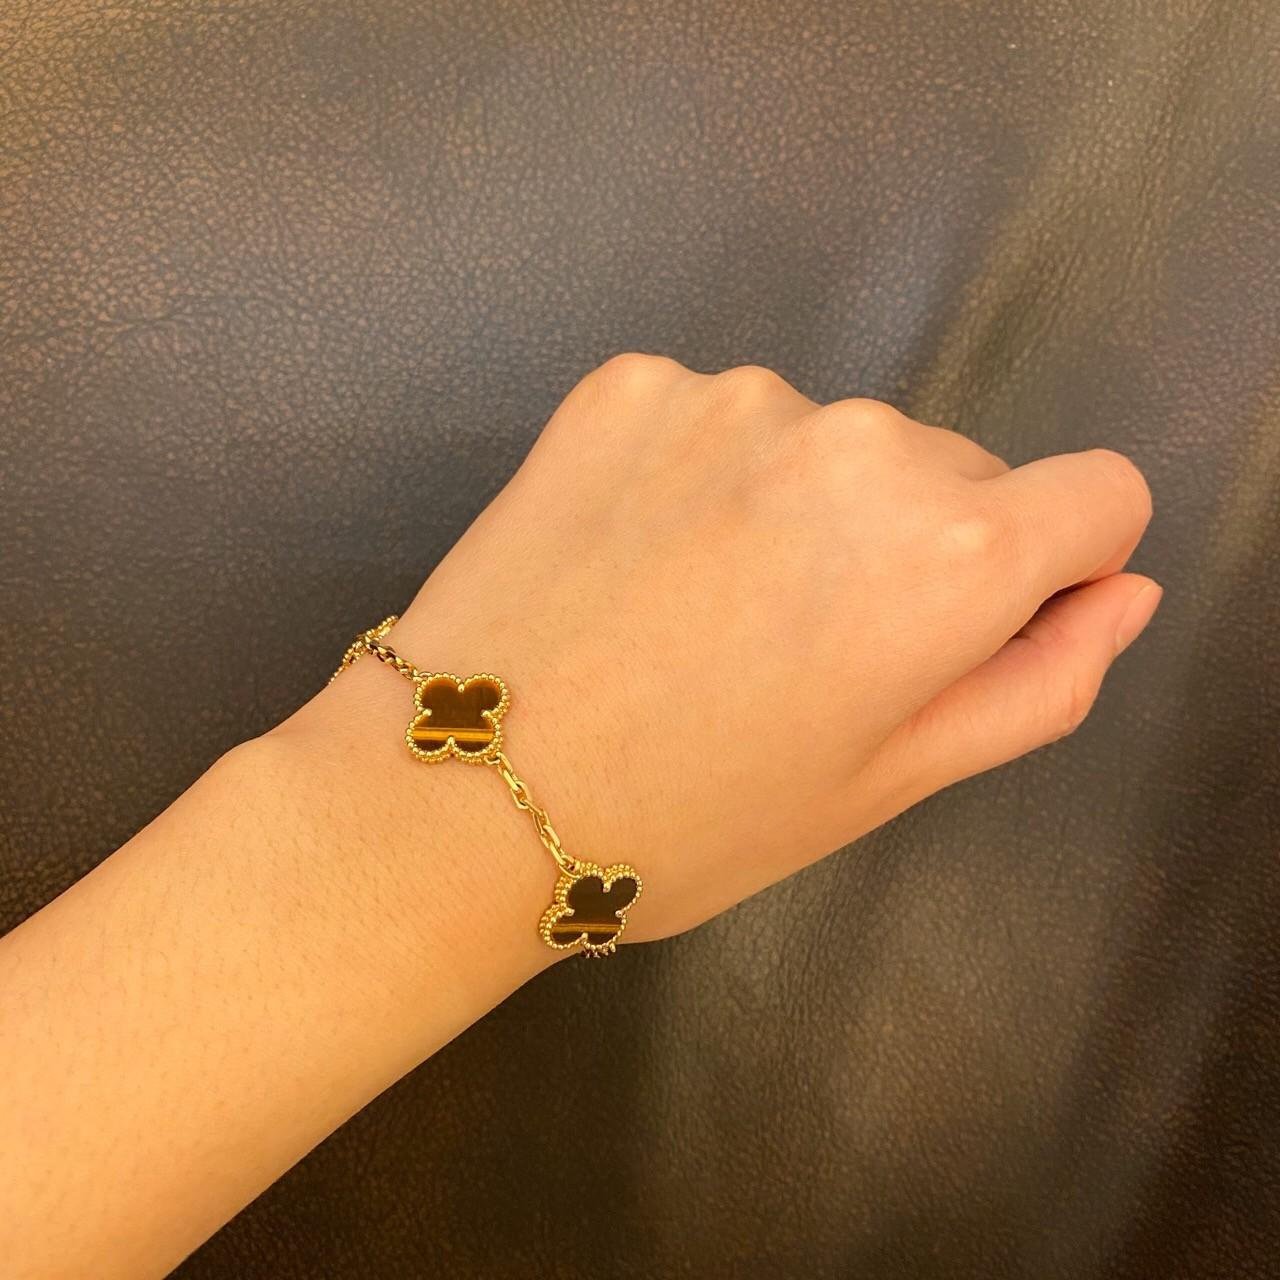 Wholesale Yellow Gold Van Cleef & Arpels Vintage Alhambra Bracelet 5 Motifs With Tiger'S Eye Stone from china suppliers